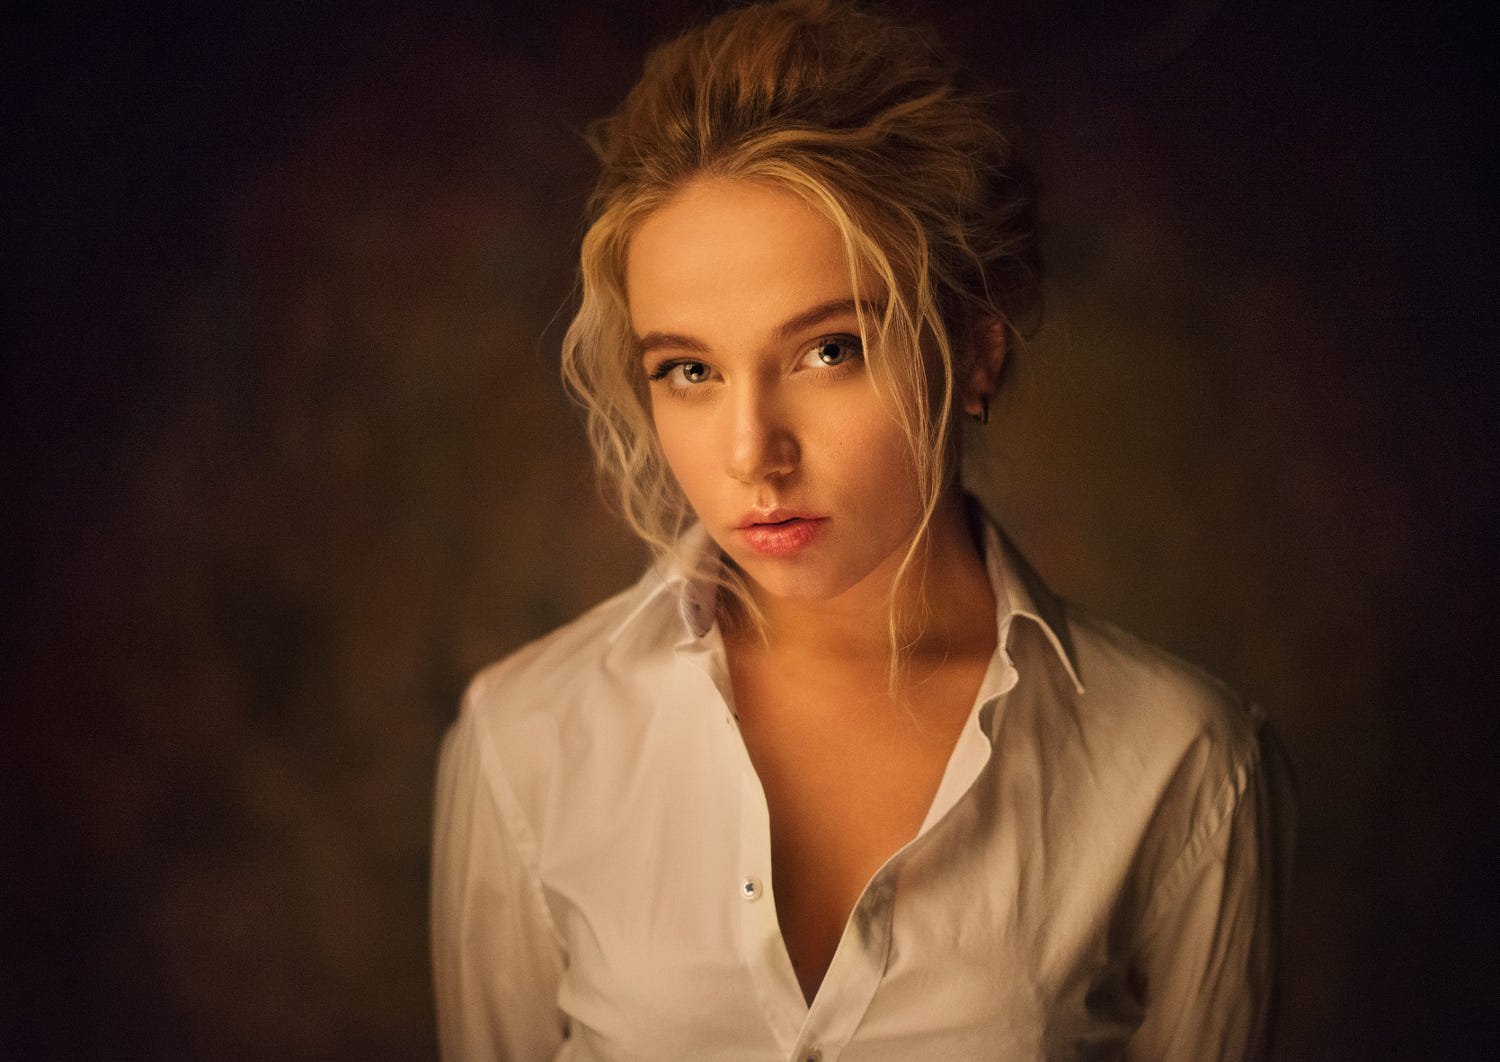 portrait photography woman by maxim maximov